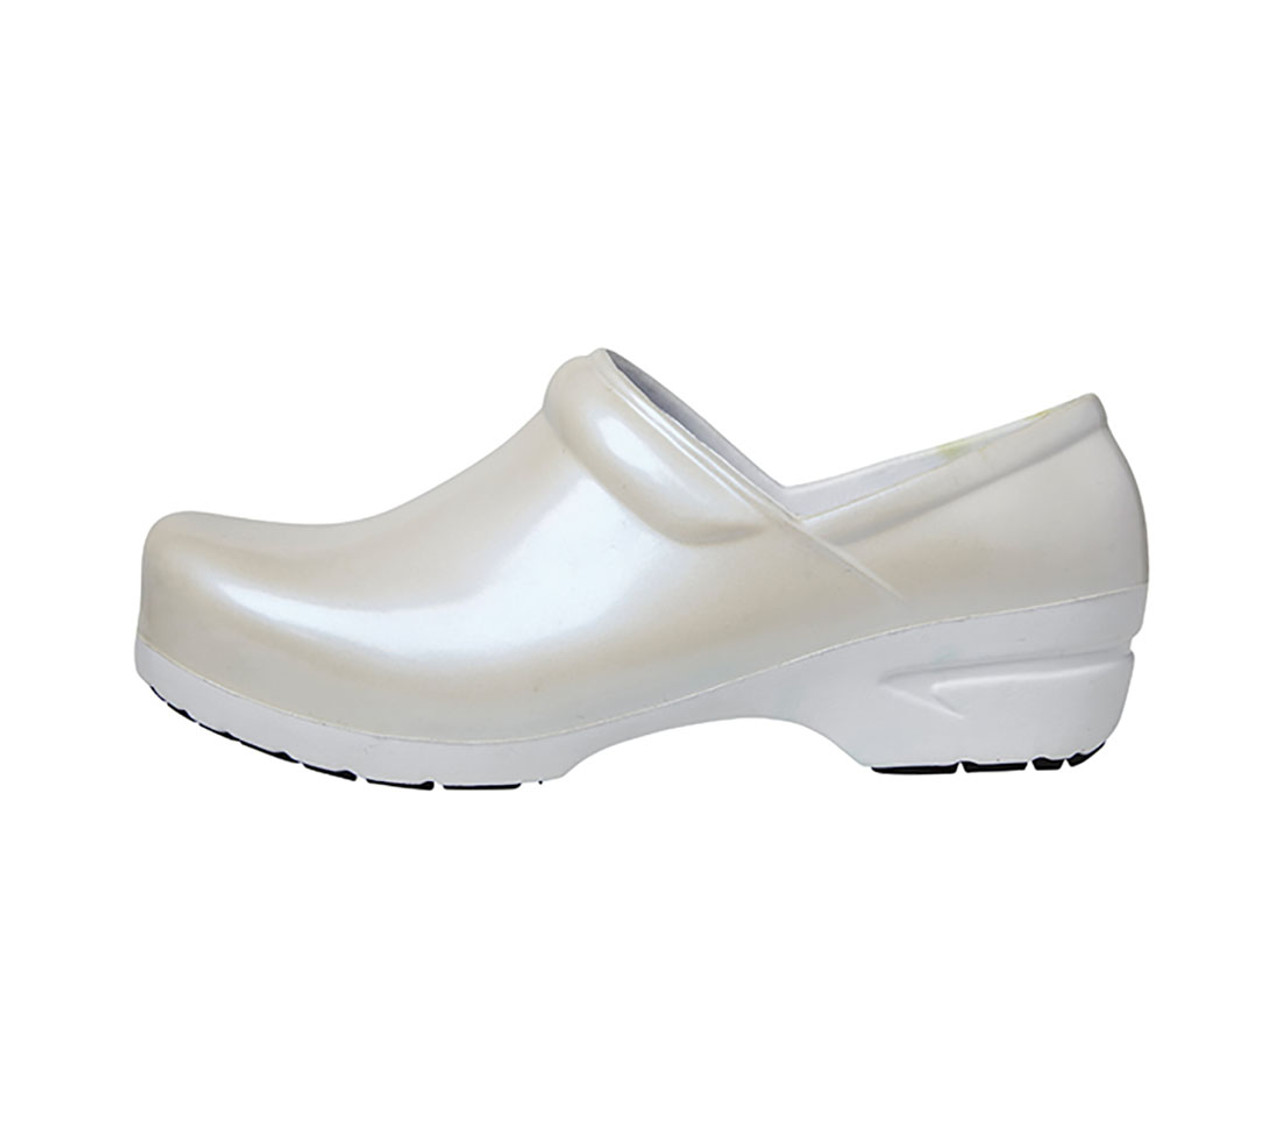 b8d7b06913b2 (SRANGEL-CRFA) Anywear White Pearlized-White Closed Back Plastic Clog ...